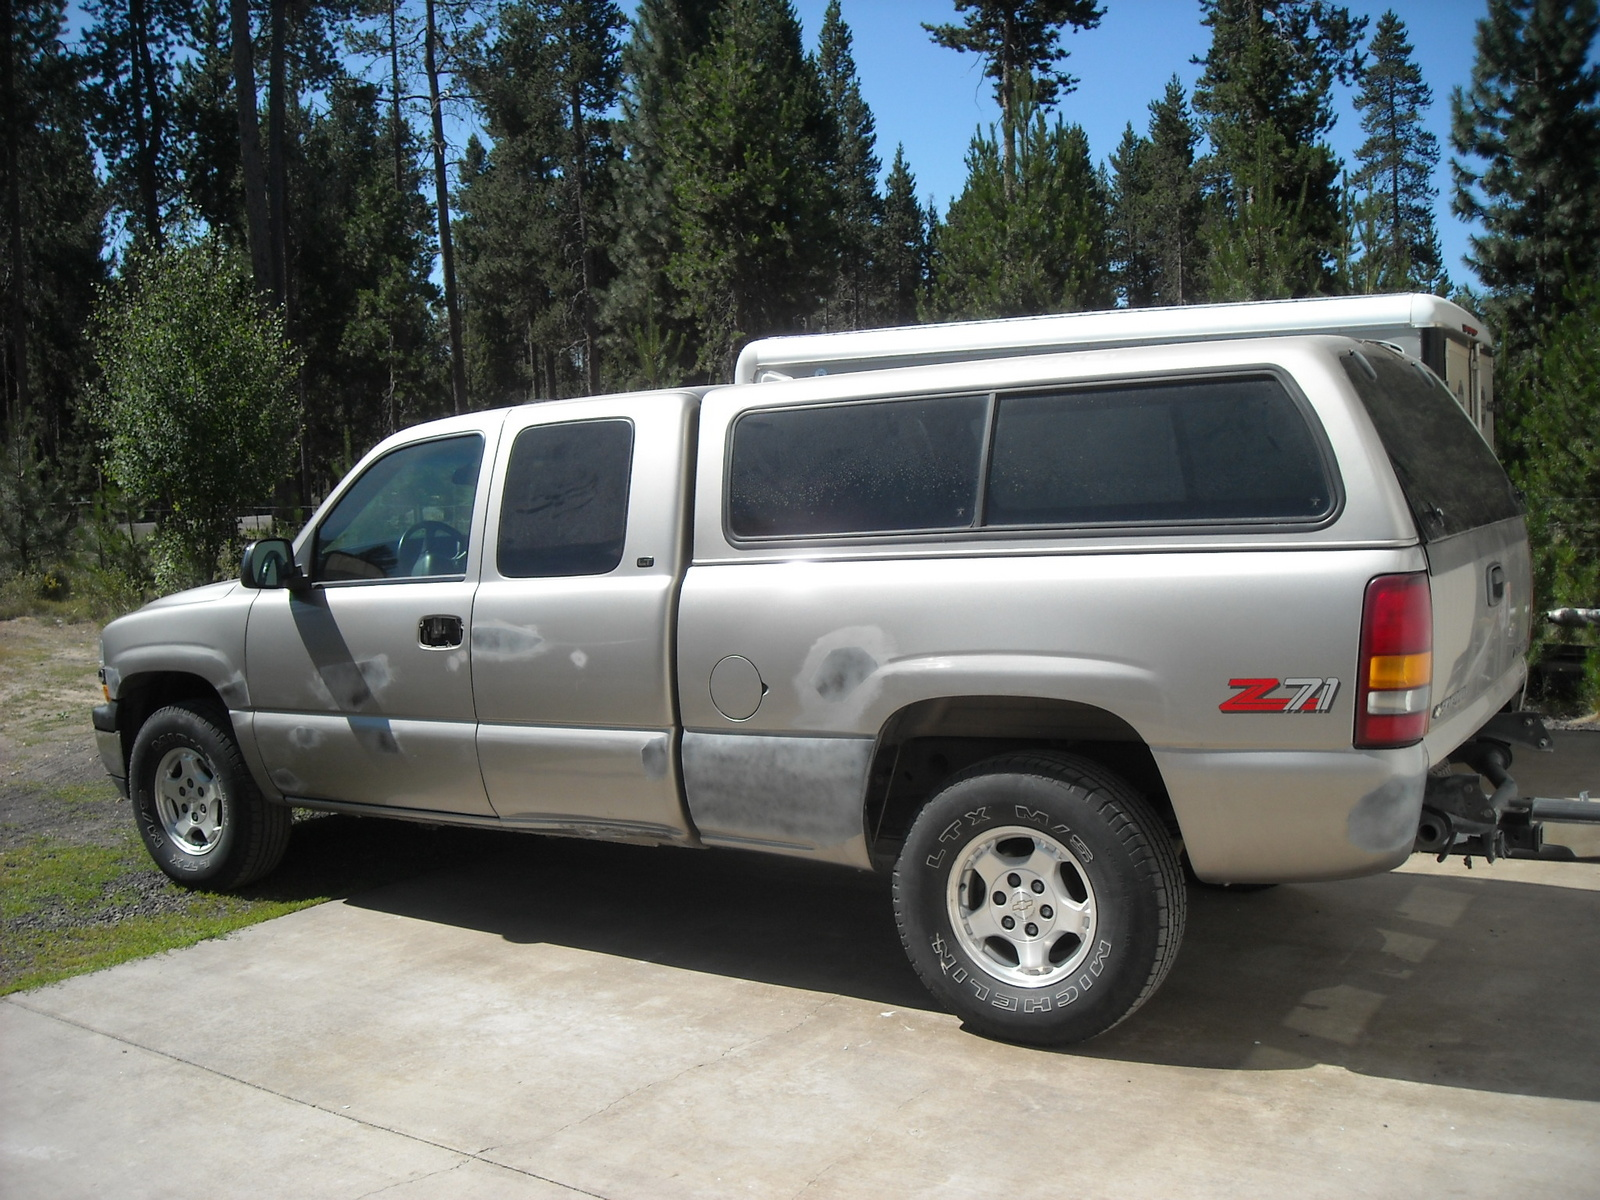 2000 chevrolet silverado 1500 lt ext cab 4wd picture exterior. Cars Review. Best American Auto & Cars Review